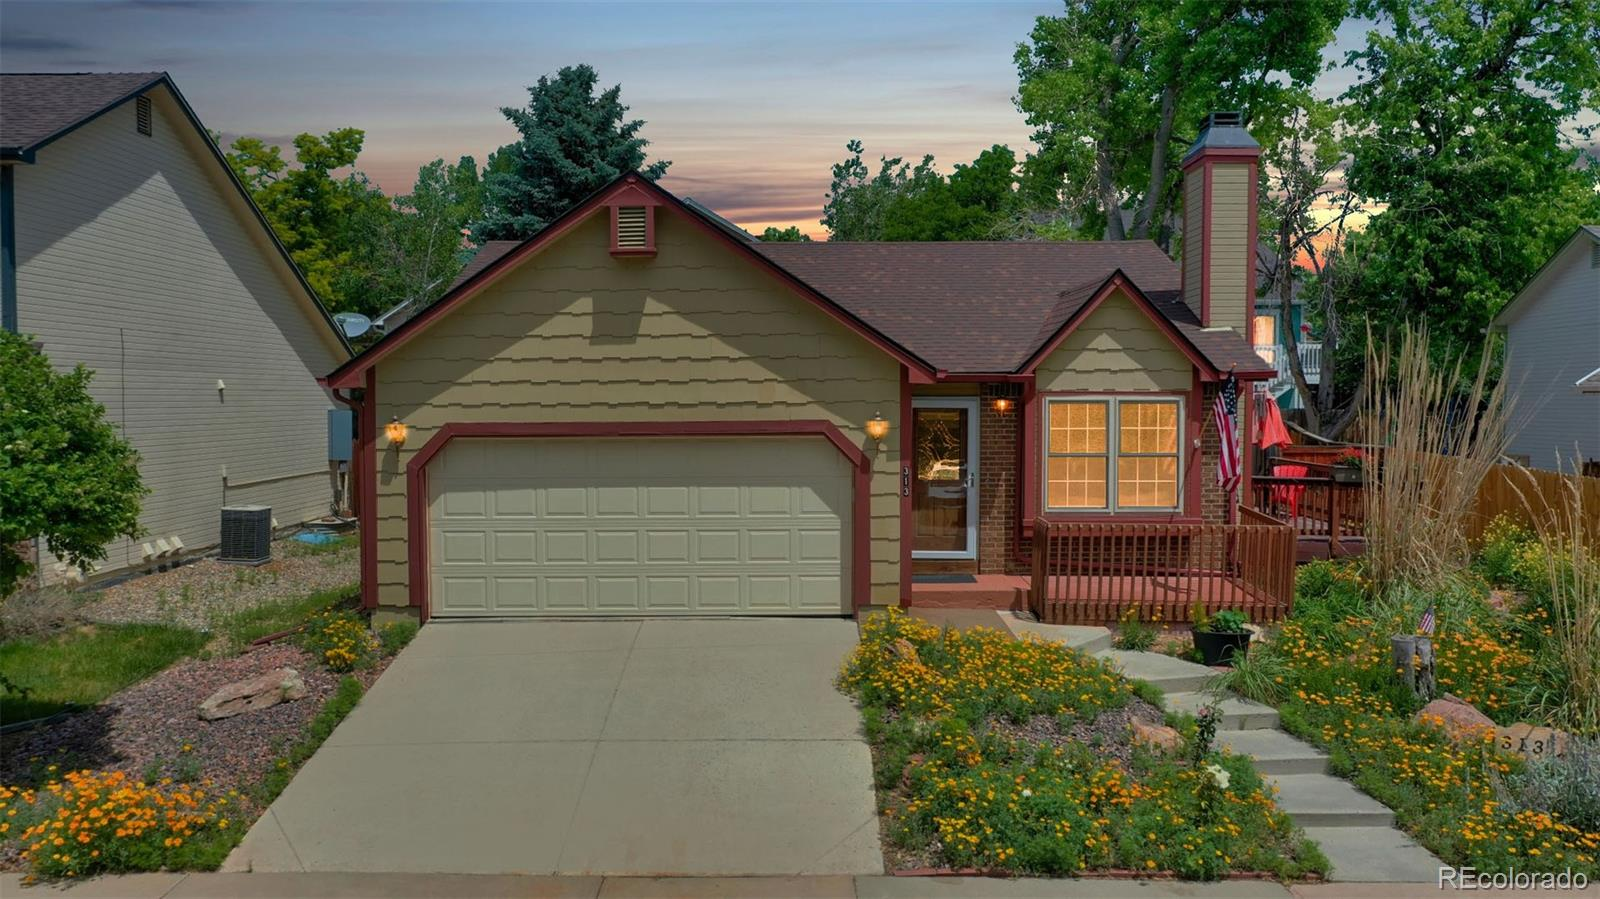 MLS# 3885943 - 1 - 313 Mulberry Circle, Broomfield, CO 80020